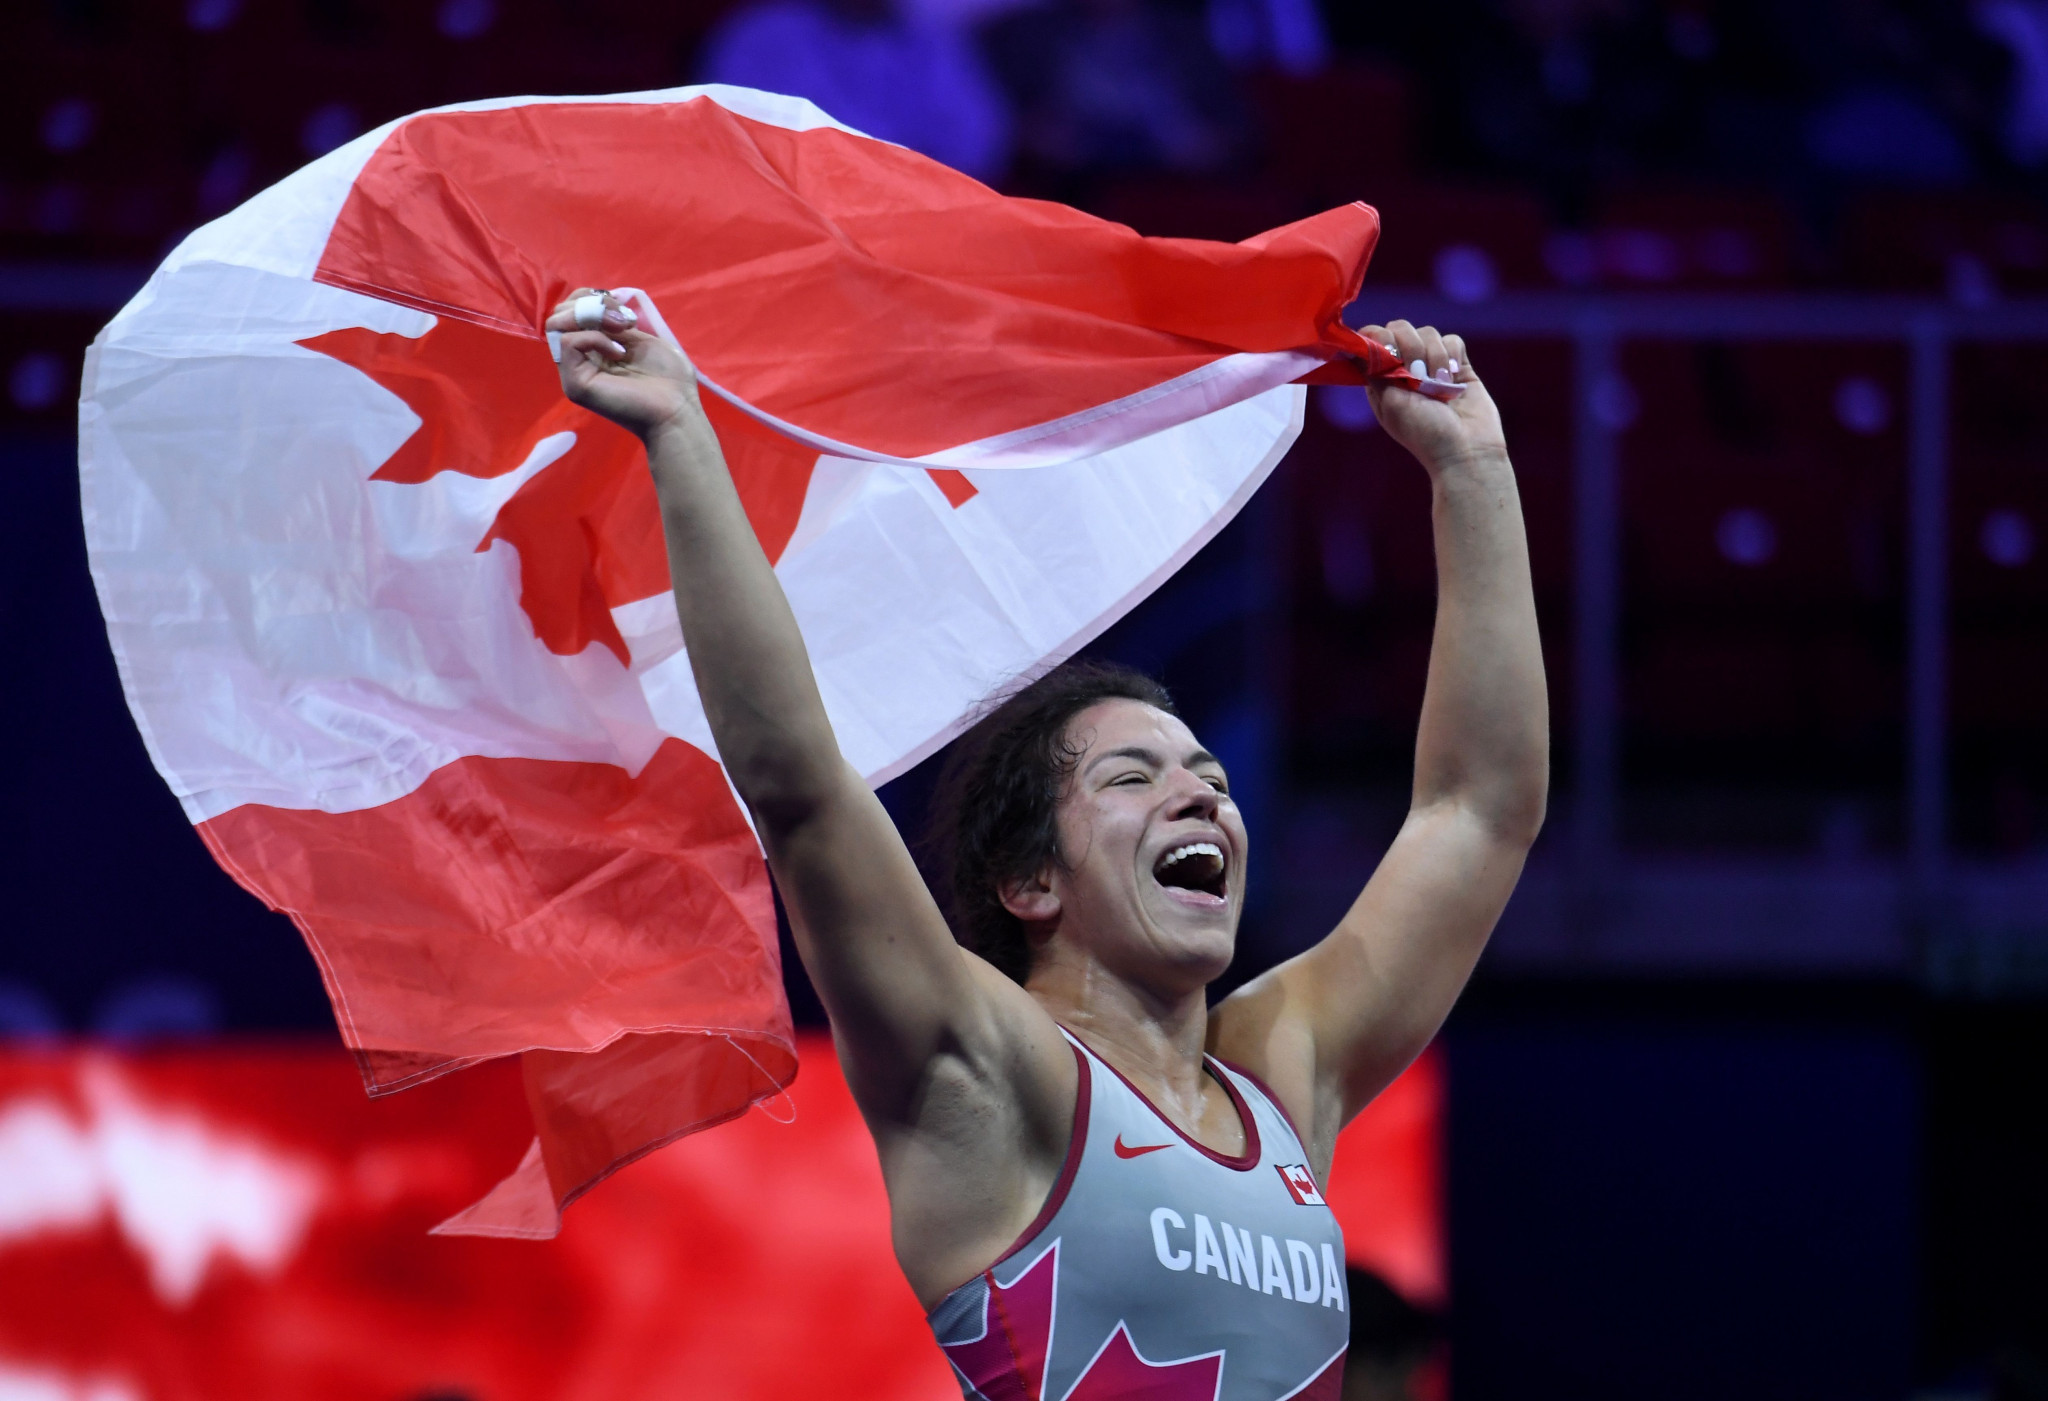 Canadian wrestlers are set to be involved in the implementation process to ensure recommendations are fully adopted following the report conducted by lawyer David Bennett ©Getty Images